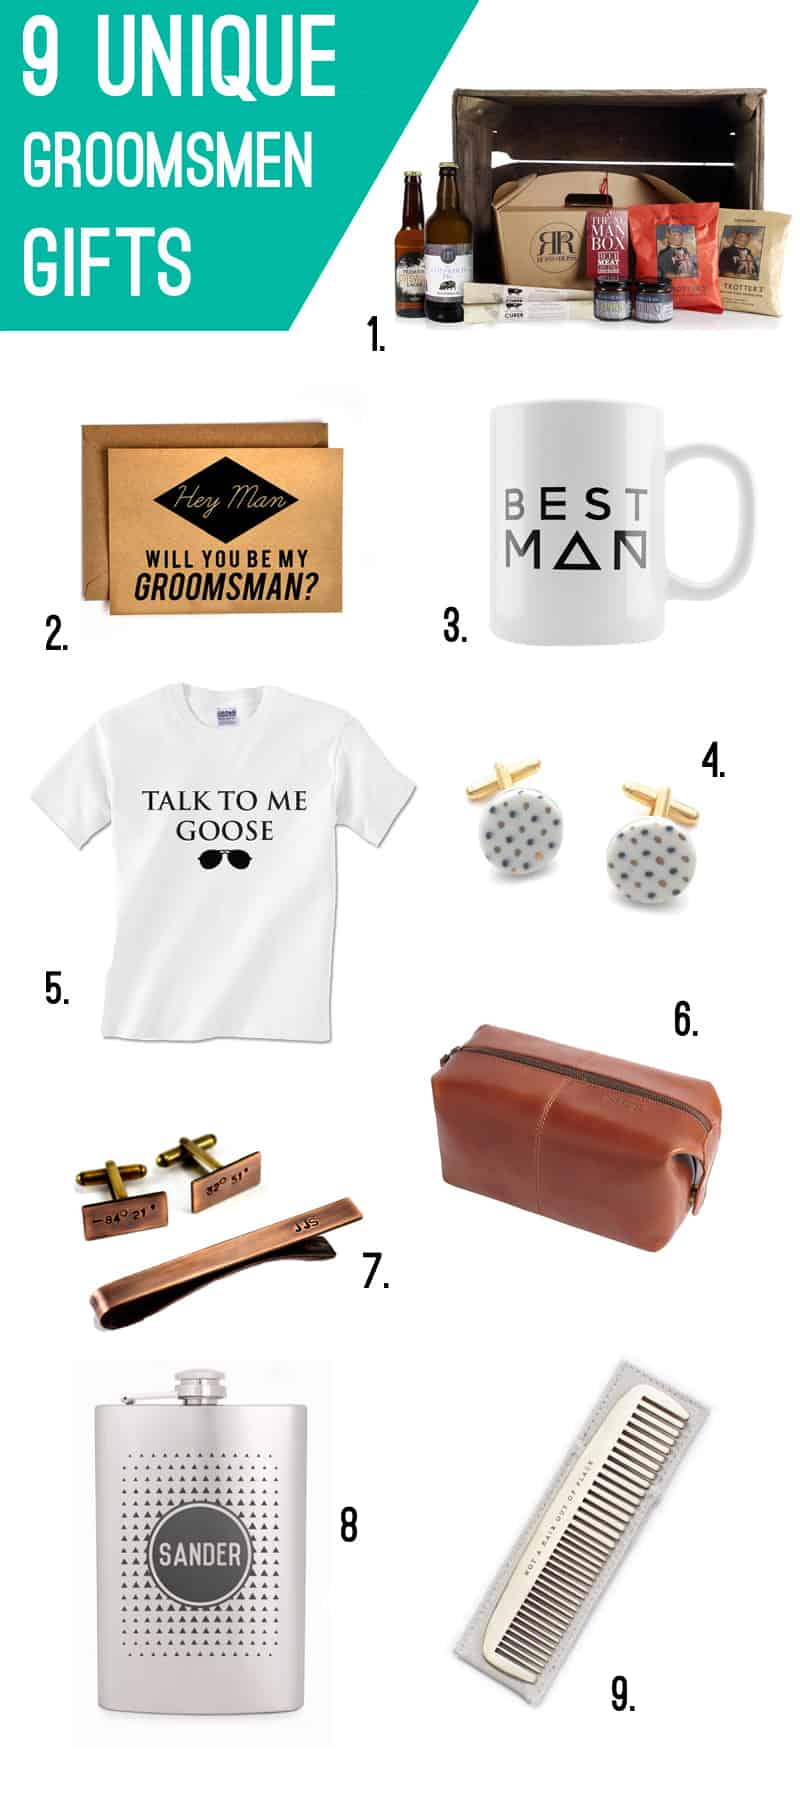 Groomsmen Wedding Gift: 9 UNIQUE GIFTS FOR GROOMSMEN